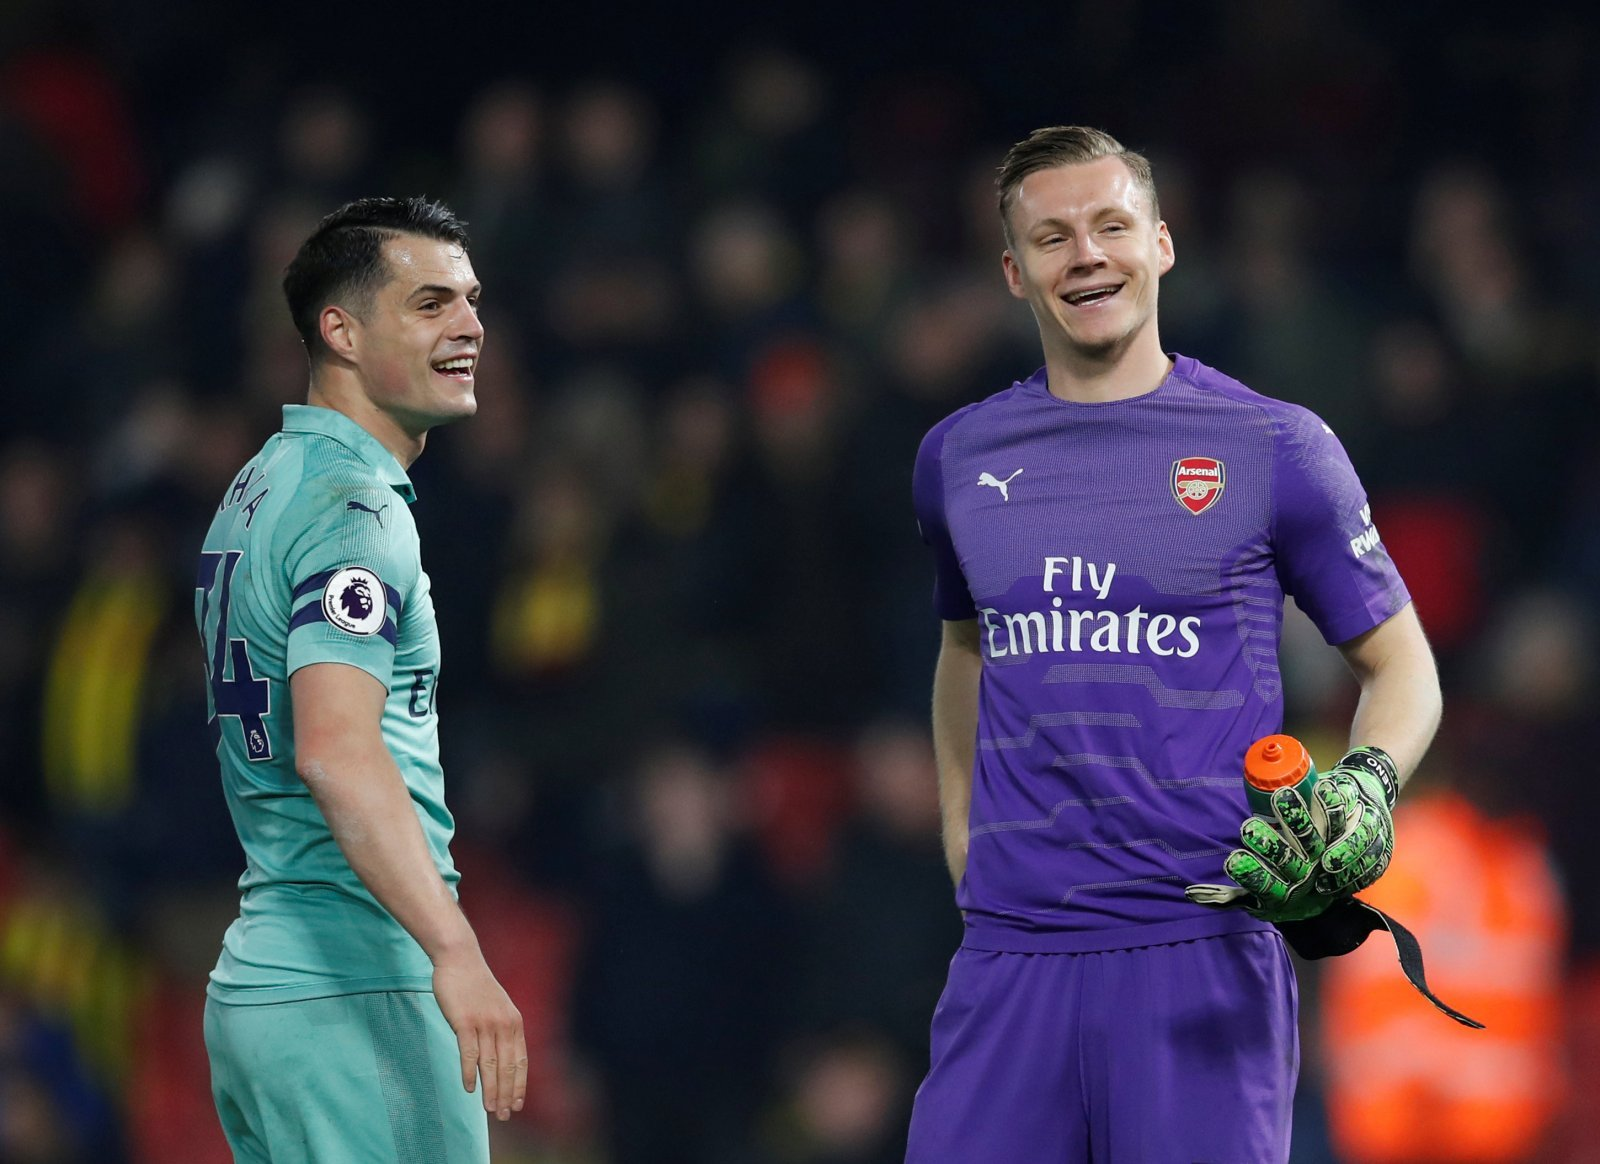 Unsung hero: Bernd Leno looking to be Arsenal's best 'keeper in years